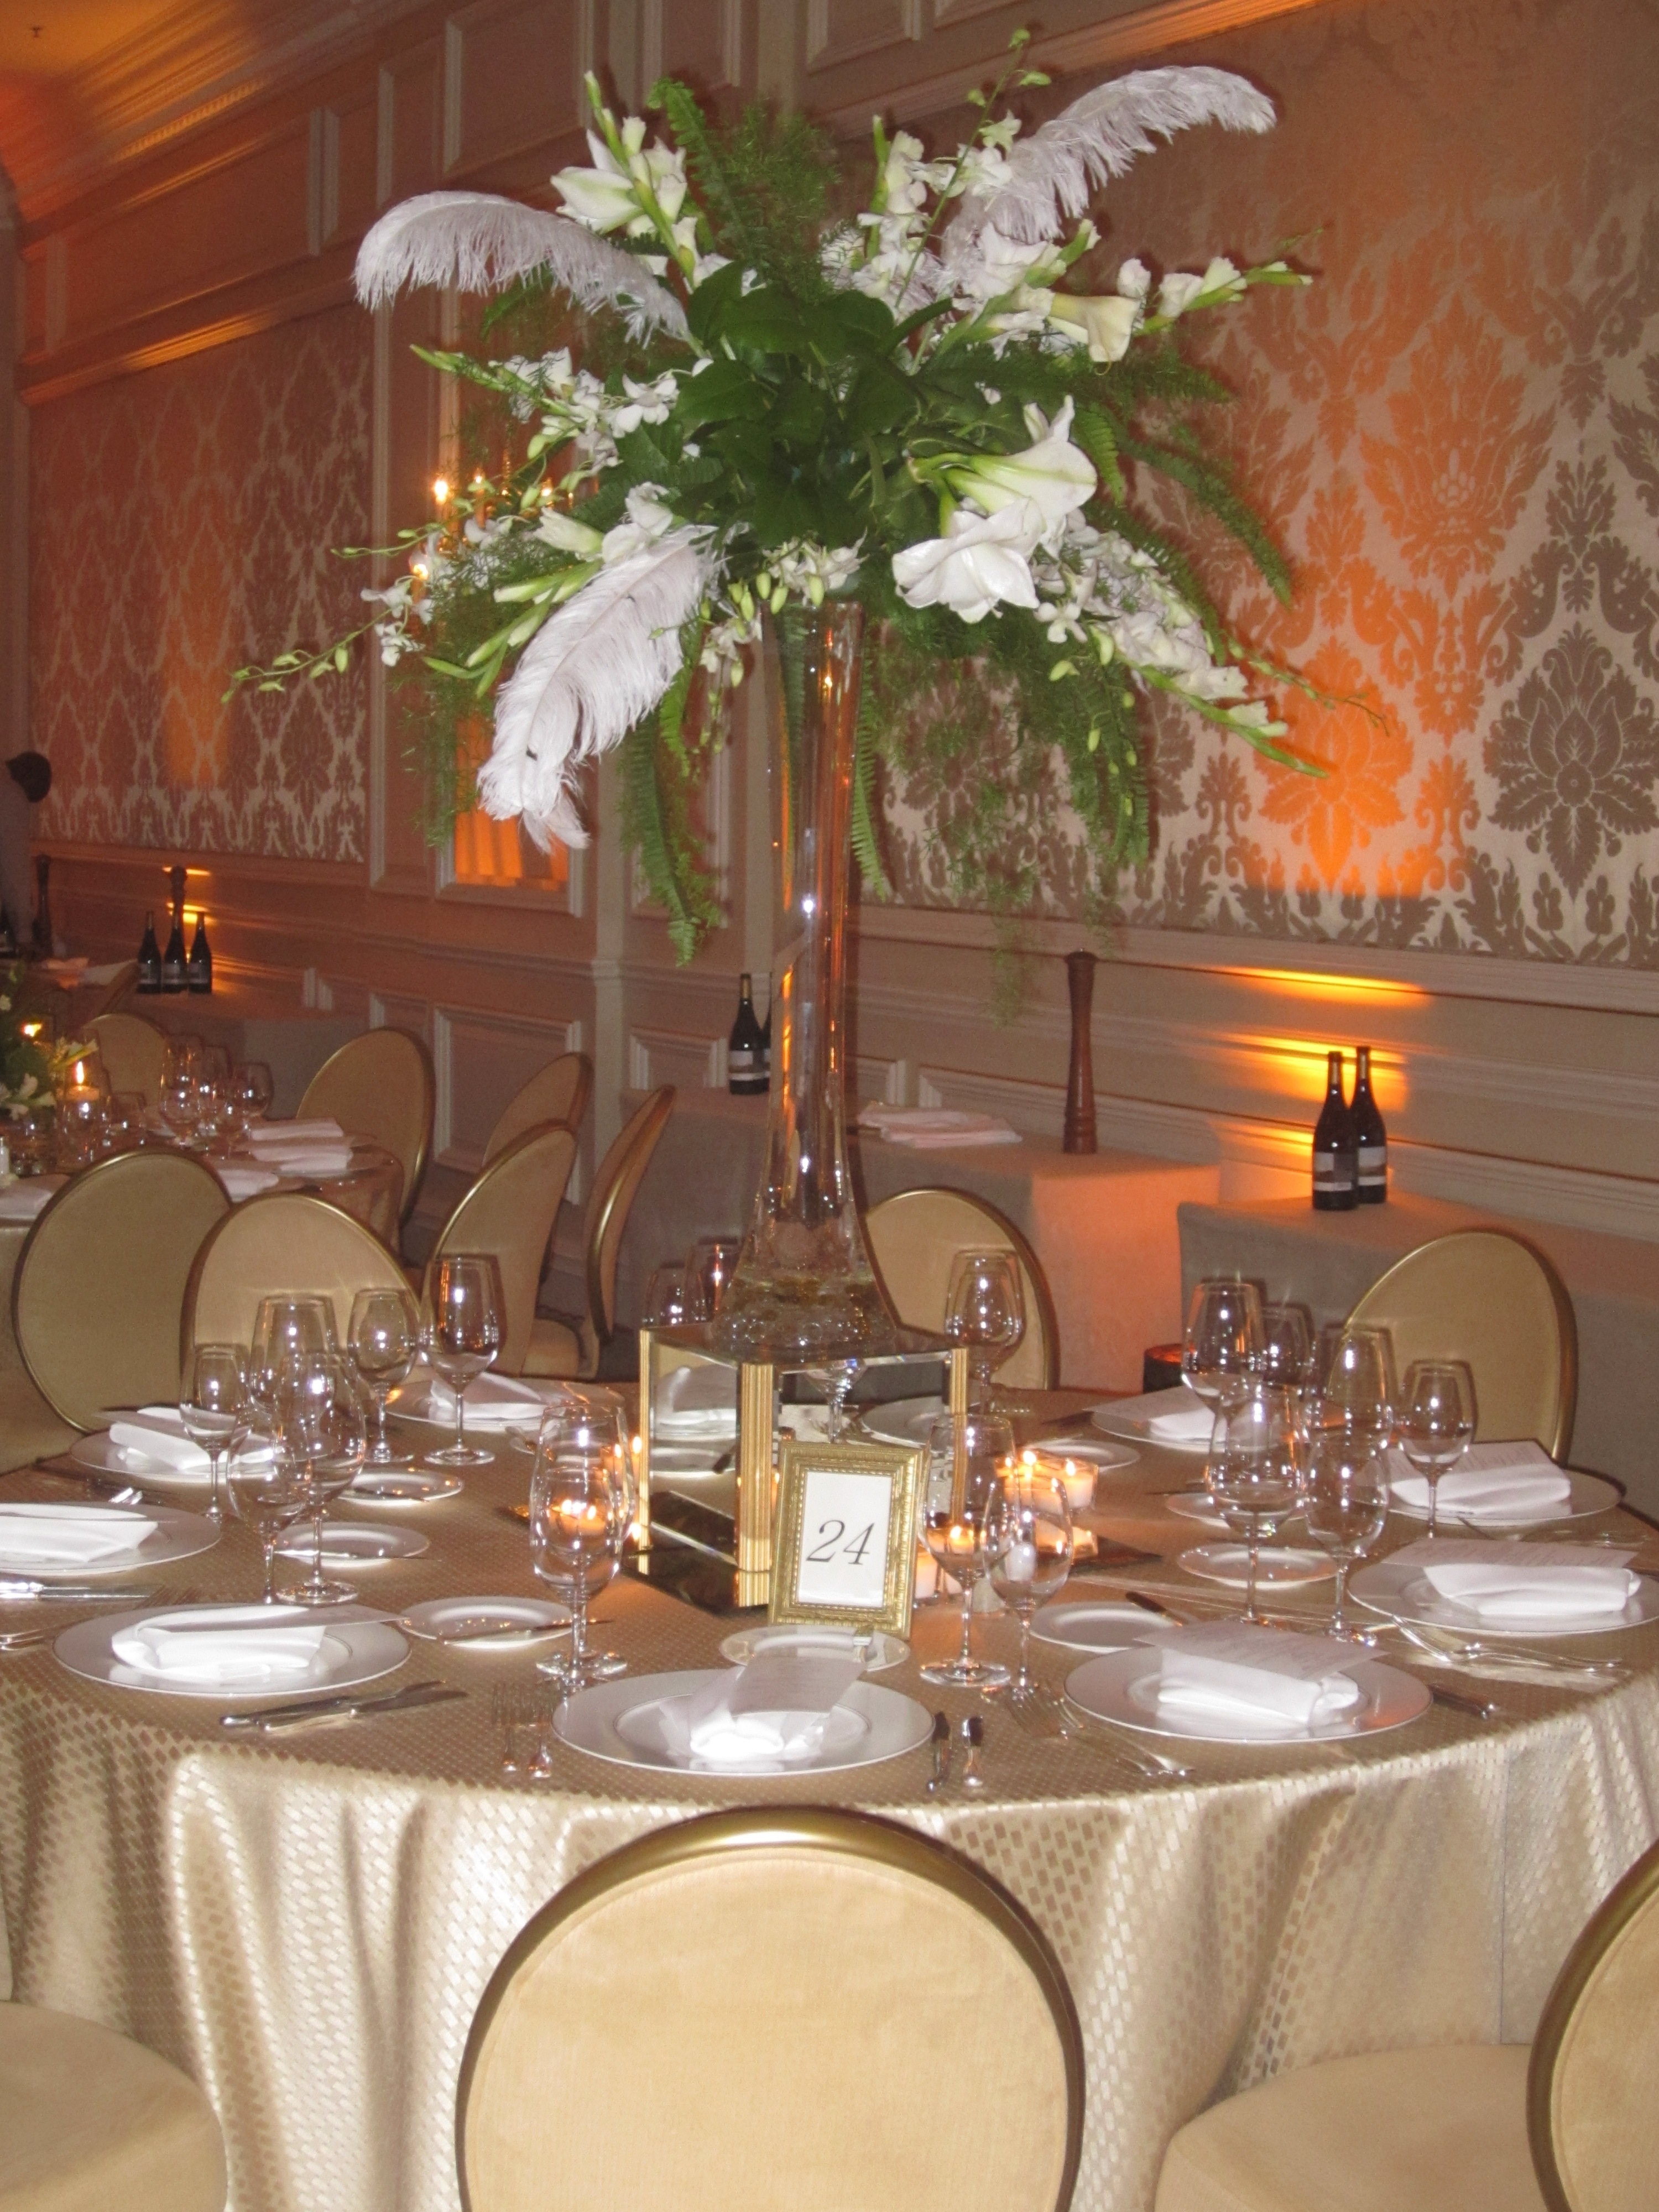 Wedding flowers events by design indy table with feathers and flowers izmirmasajfo